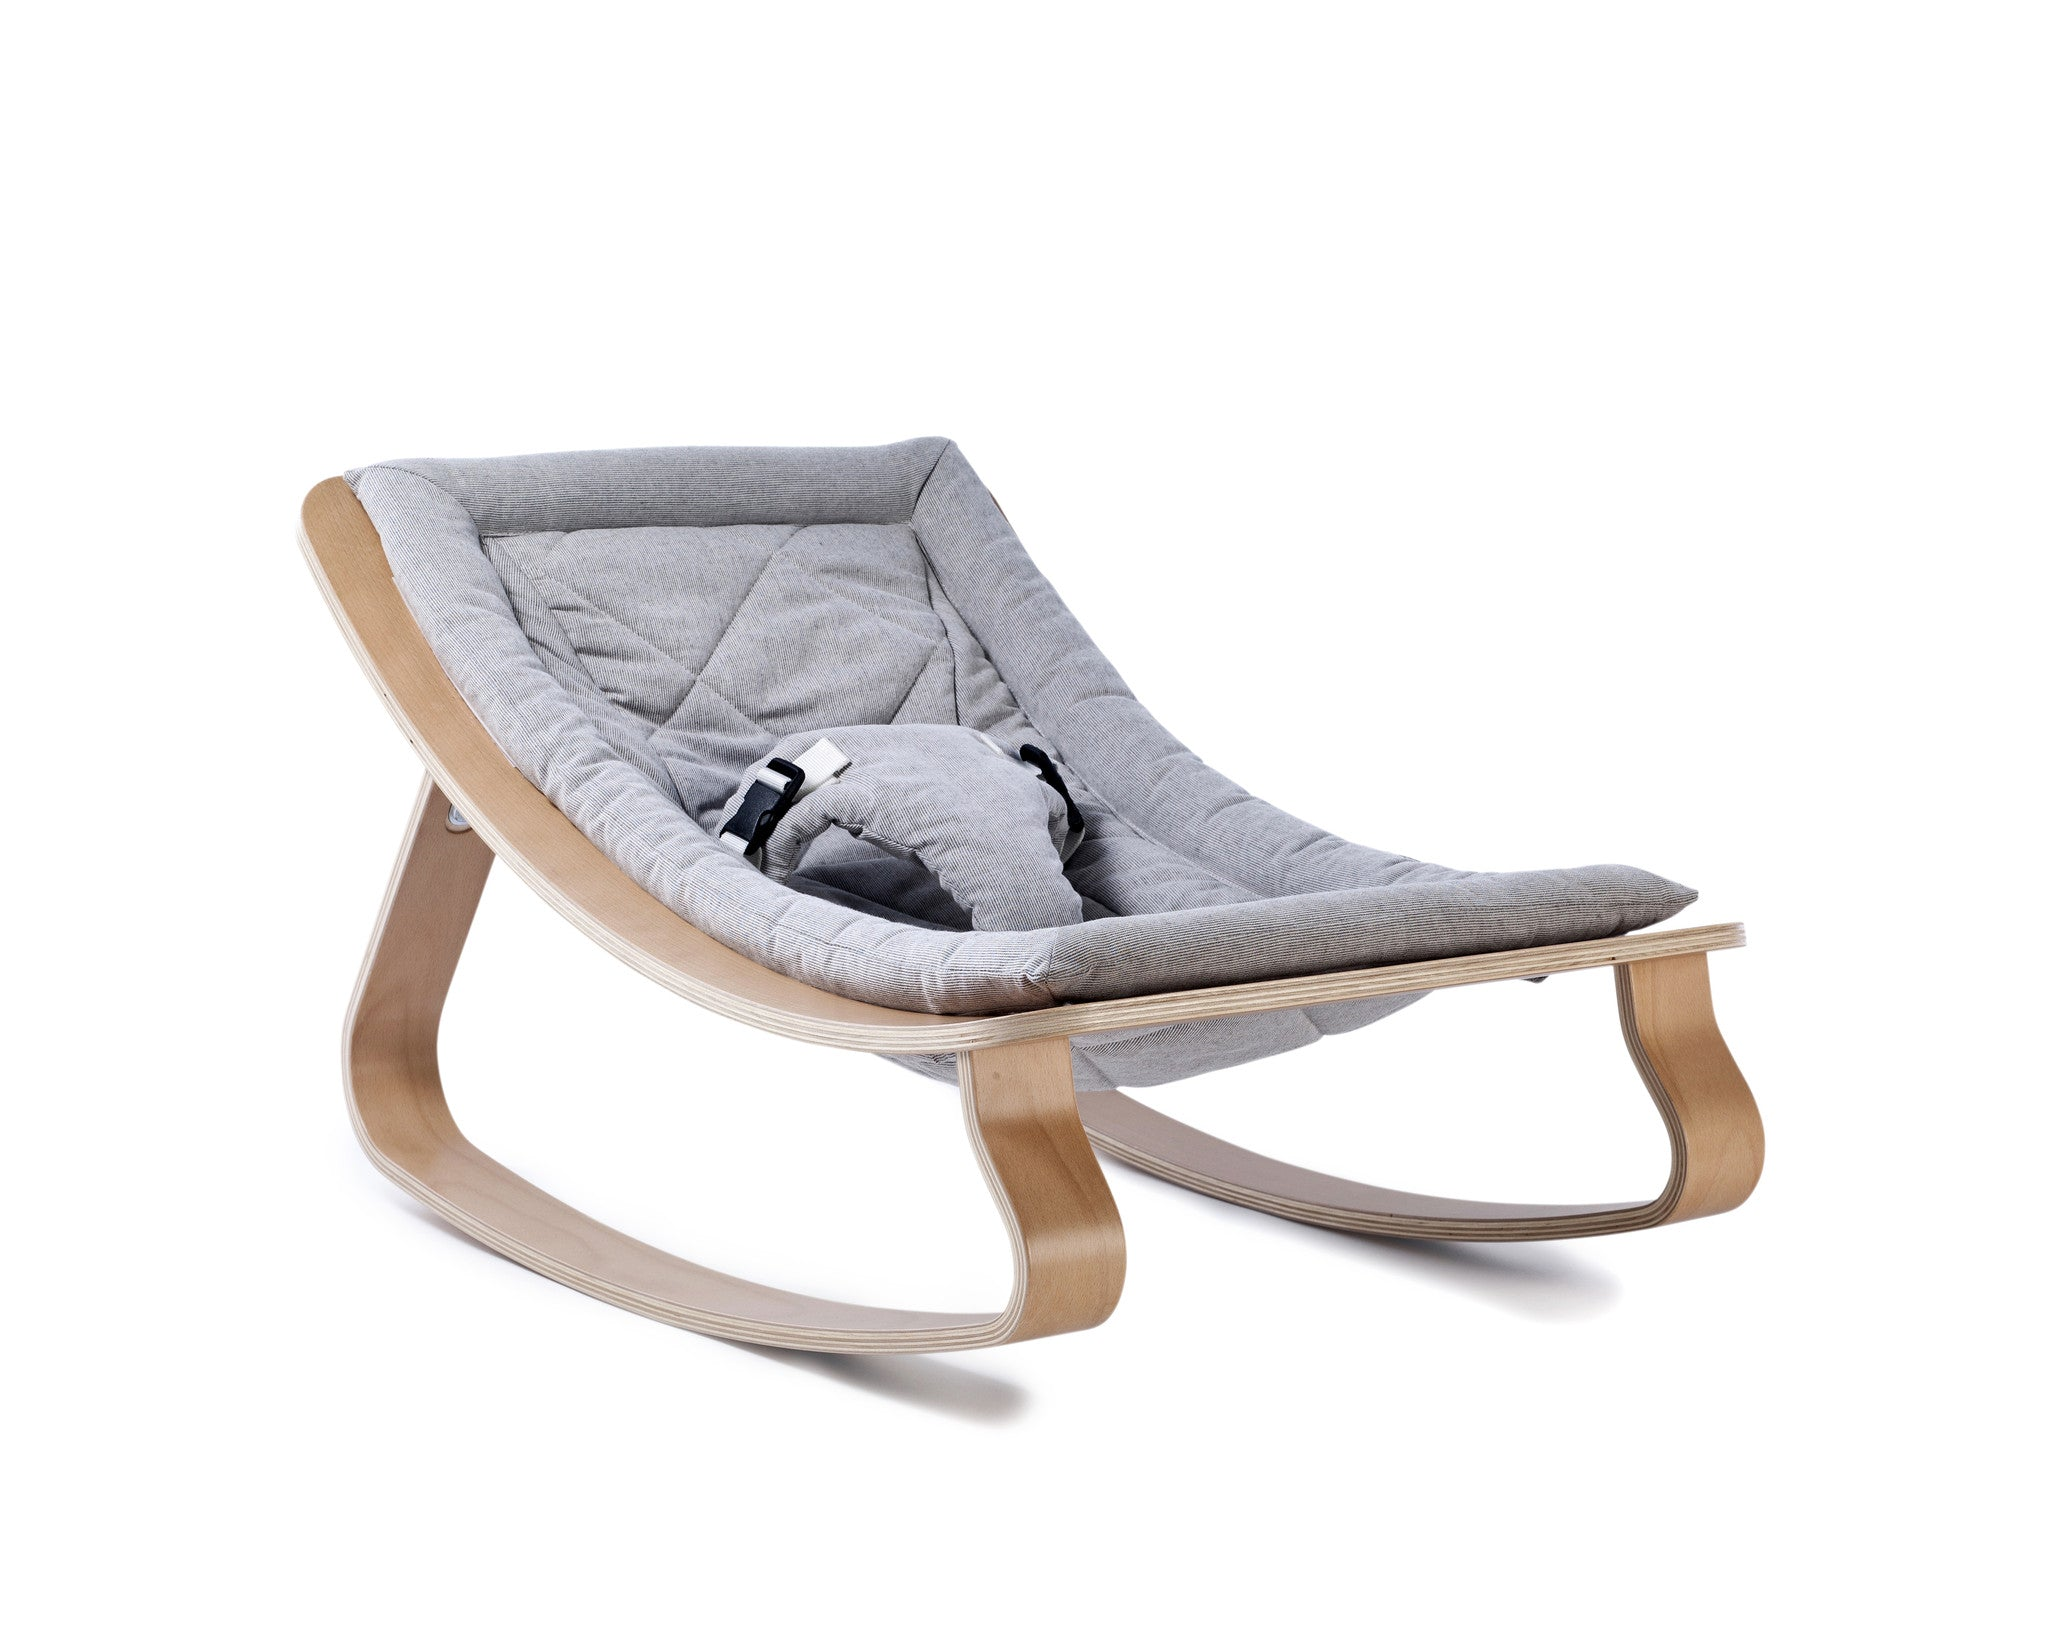 Baby rocker levo - sweet grey - KID - 1